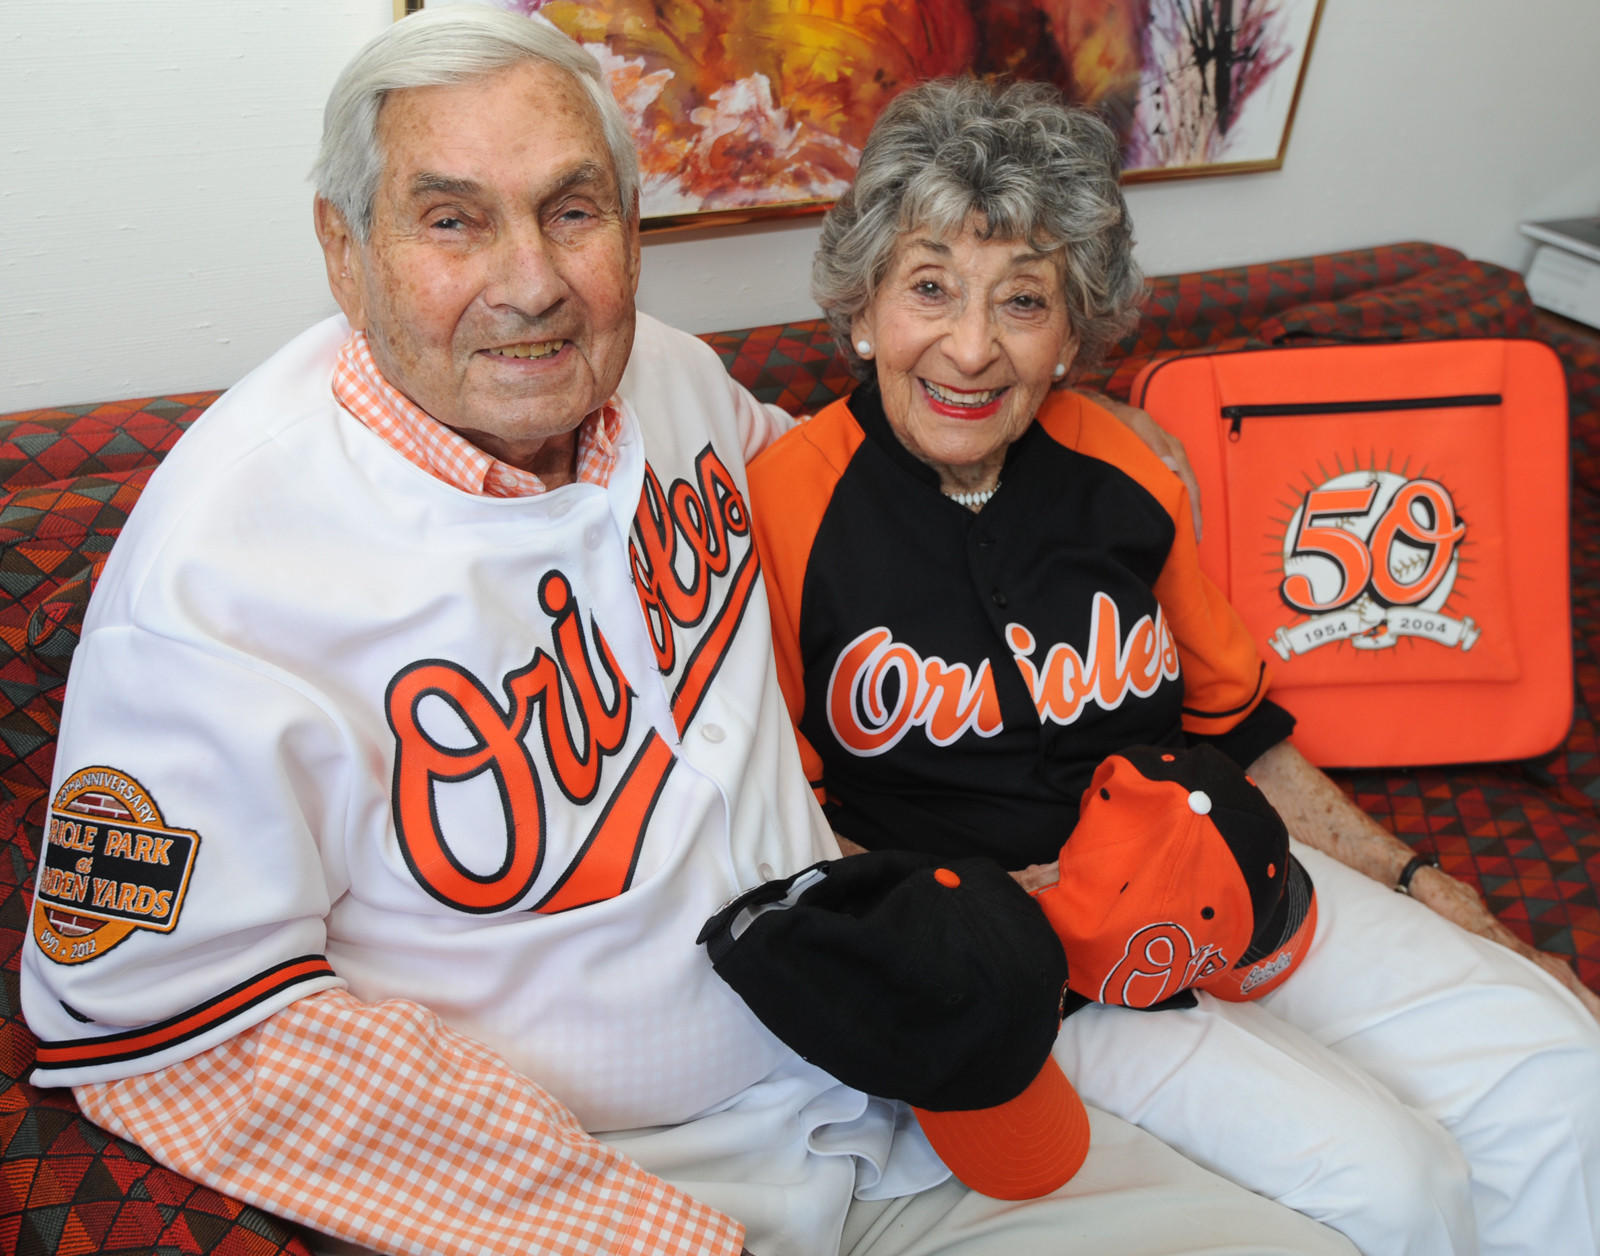 Nathan Goldberg, 95, is a 60-year Orioles season-ticket holder who will be among a group of long-time customers celebrated by the team Friday night. He's pictured with his wife, Lucille in their home.